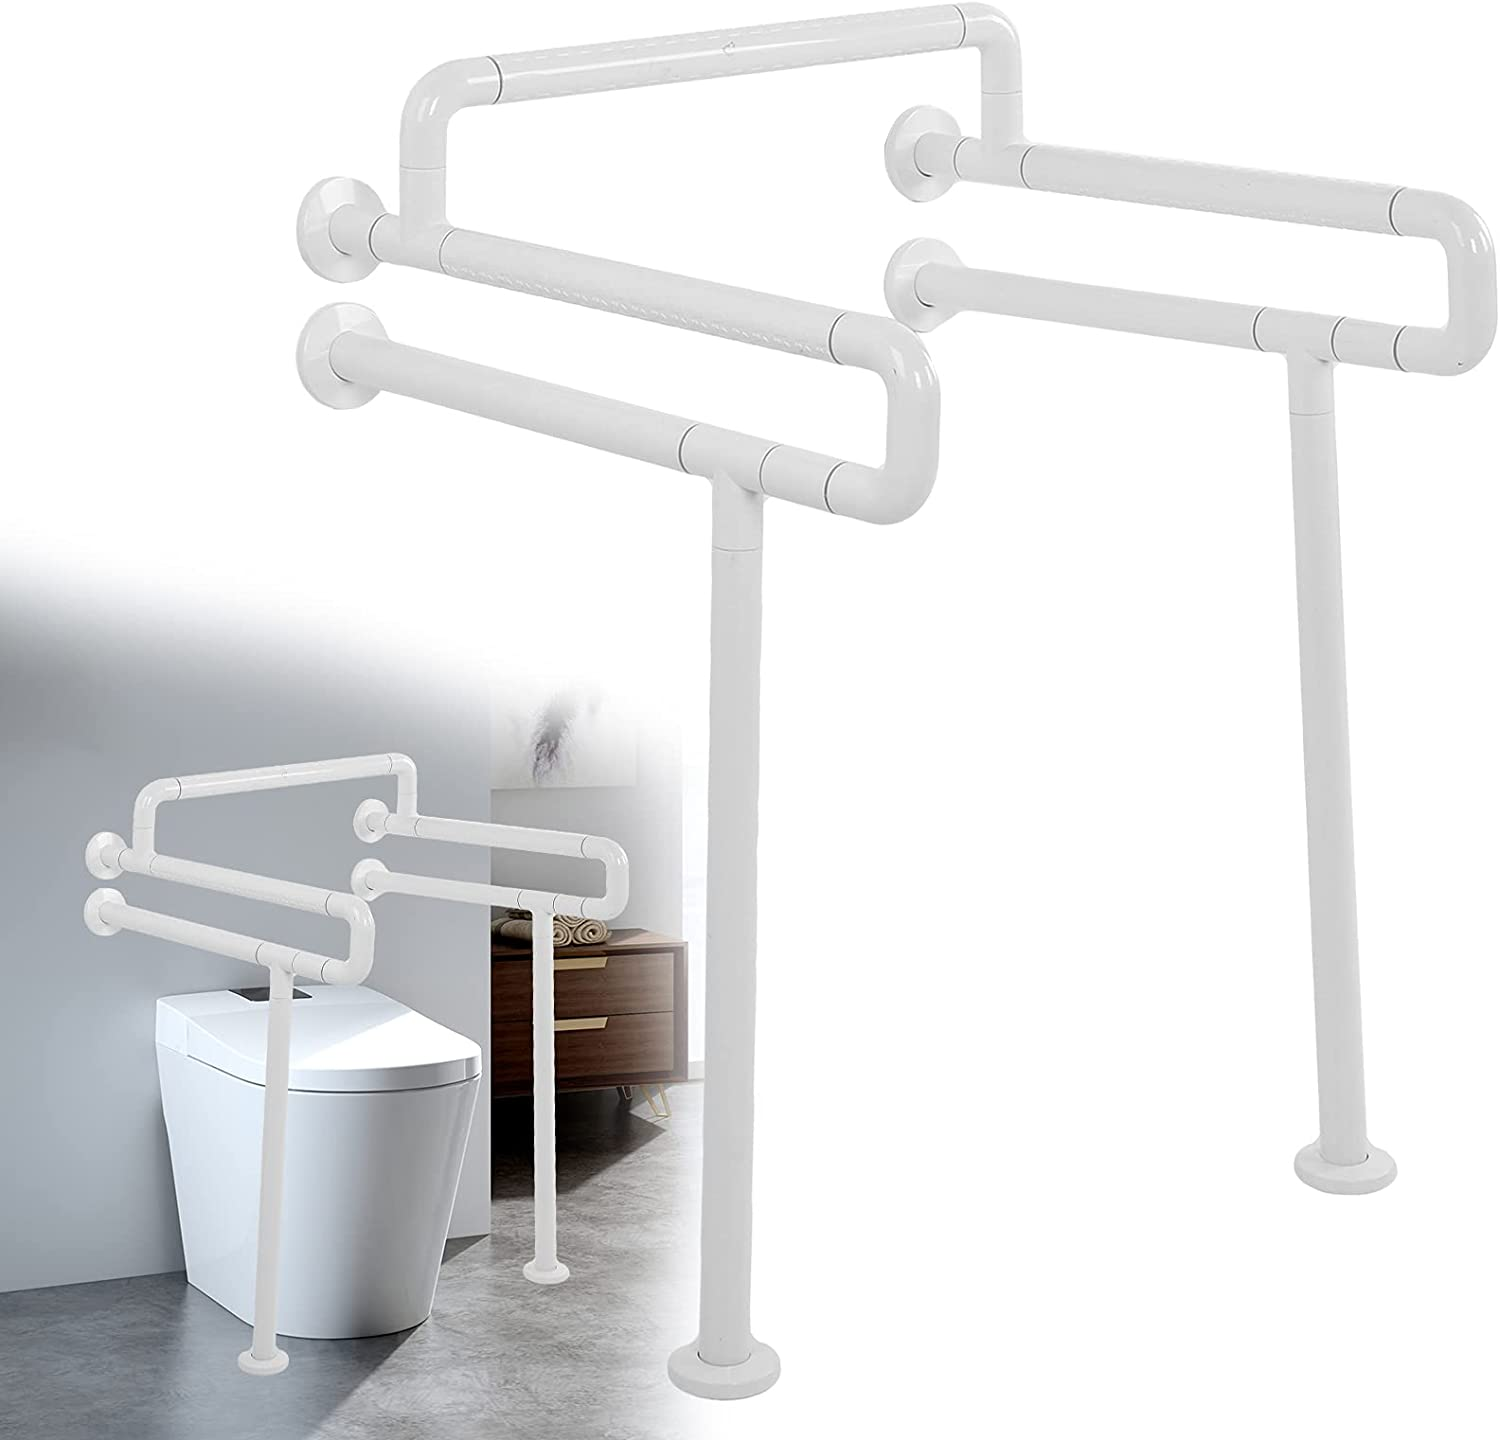 Toilet Frame Handles Safety Anti?Slip Bathroom Our shop most popular Steel Stainless Max 48% OFF